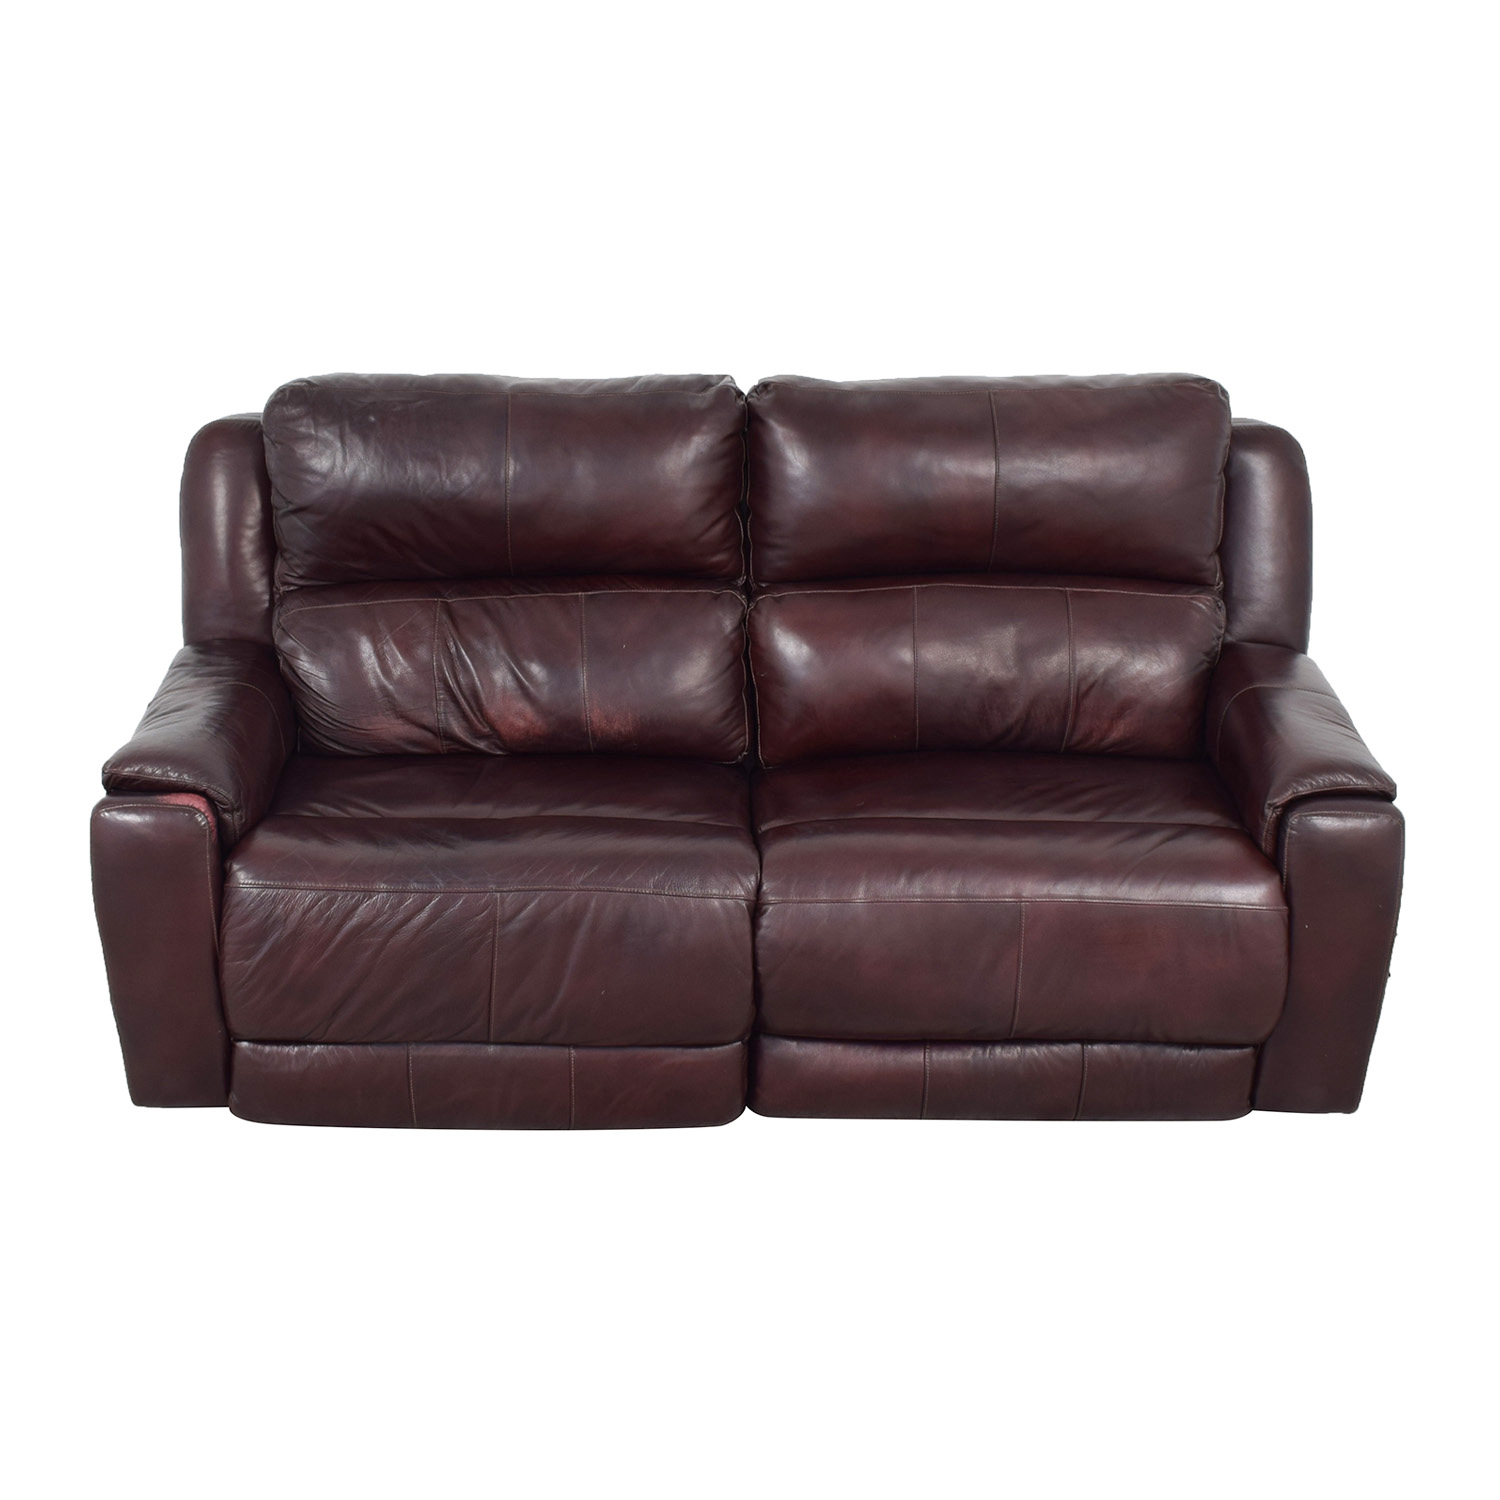 Raymour & Flanigan Brown Leather Electric Recliner / Sofas